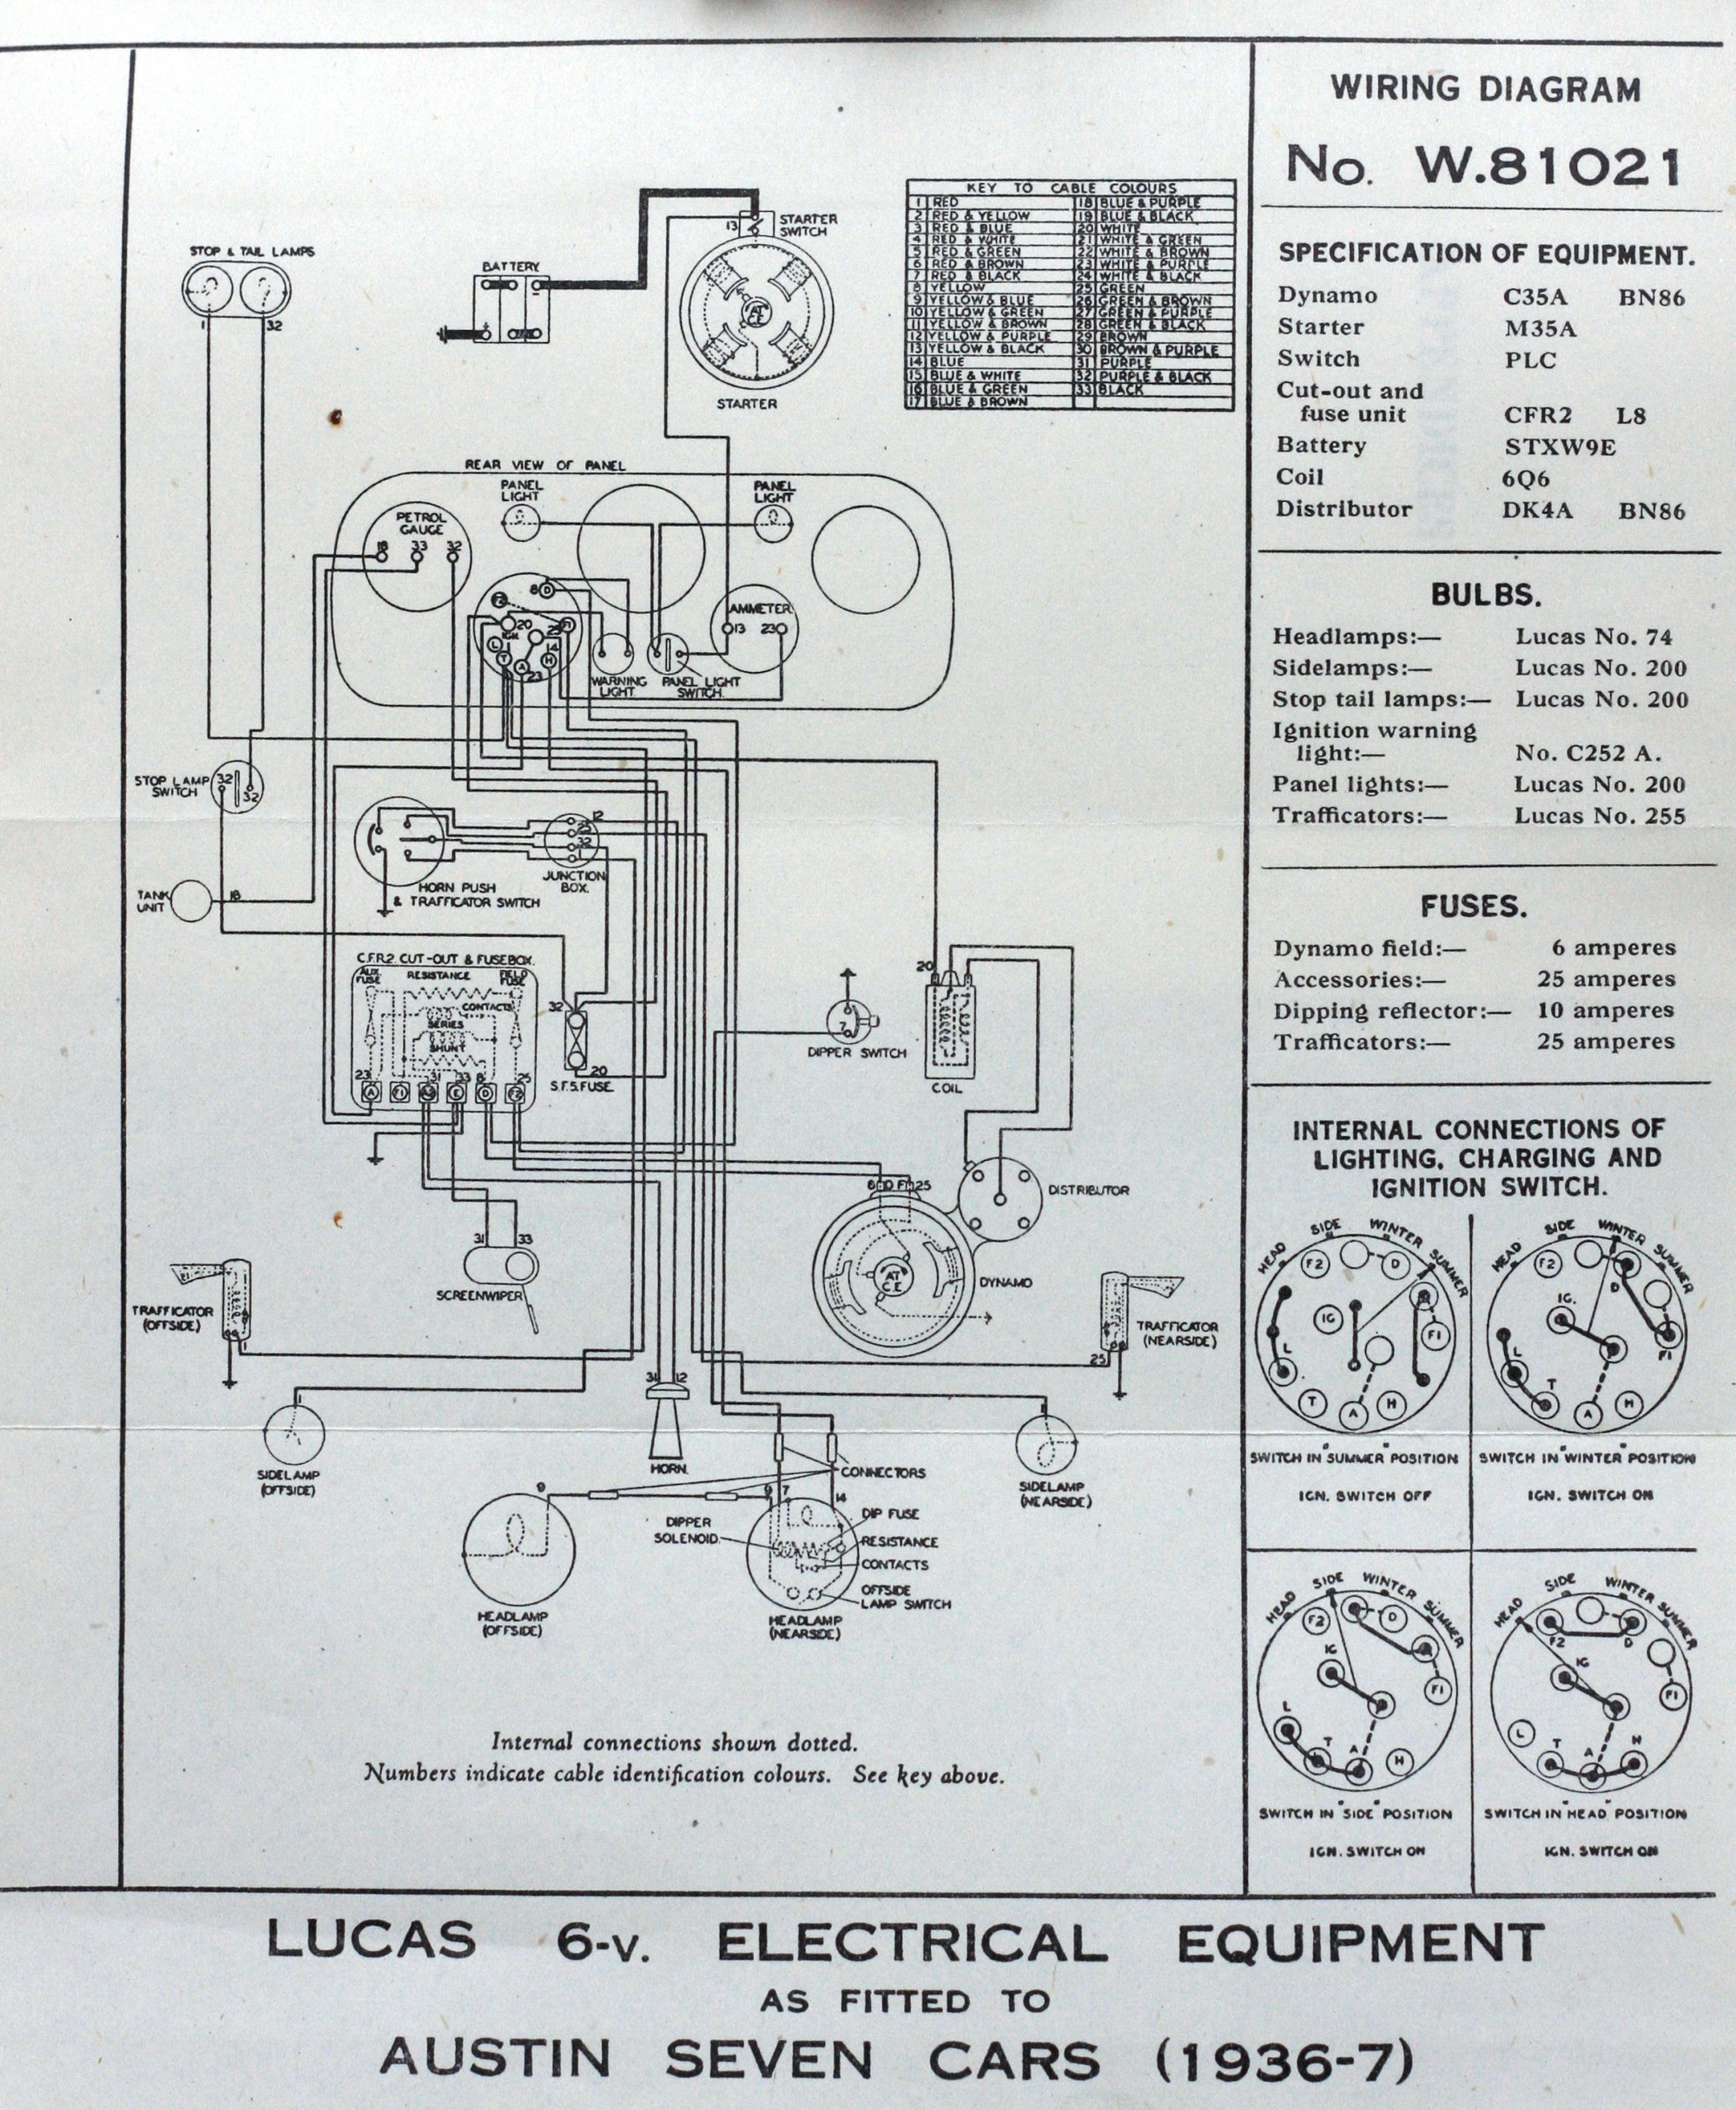 hight resolution of austin seven lucas wiring diagram u2013 austin 65 nippy archiveaustin seven lucas wiring diagram